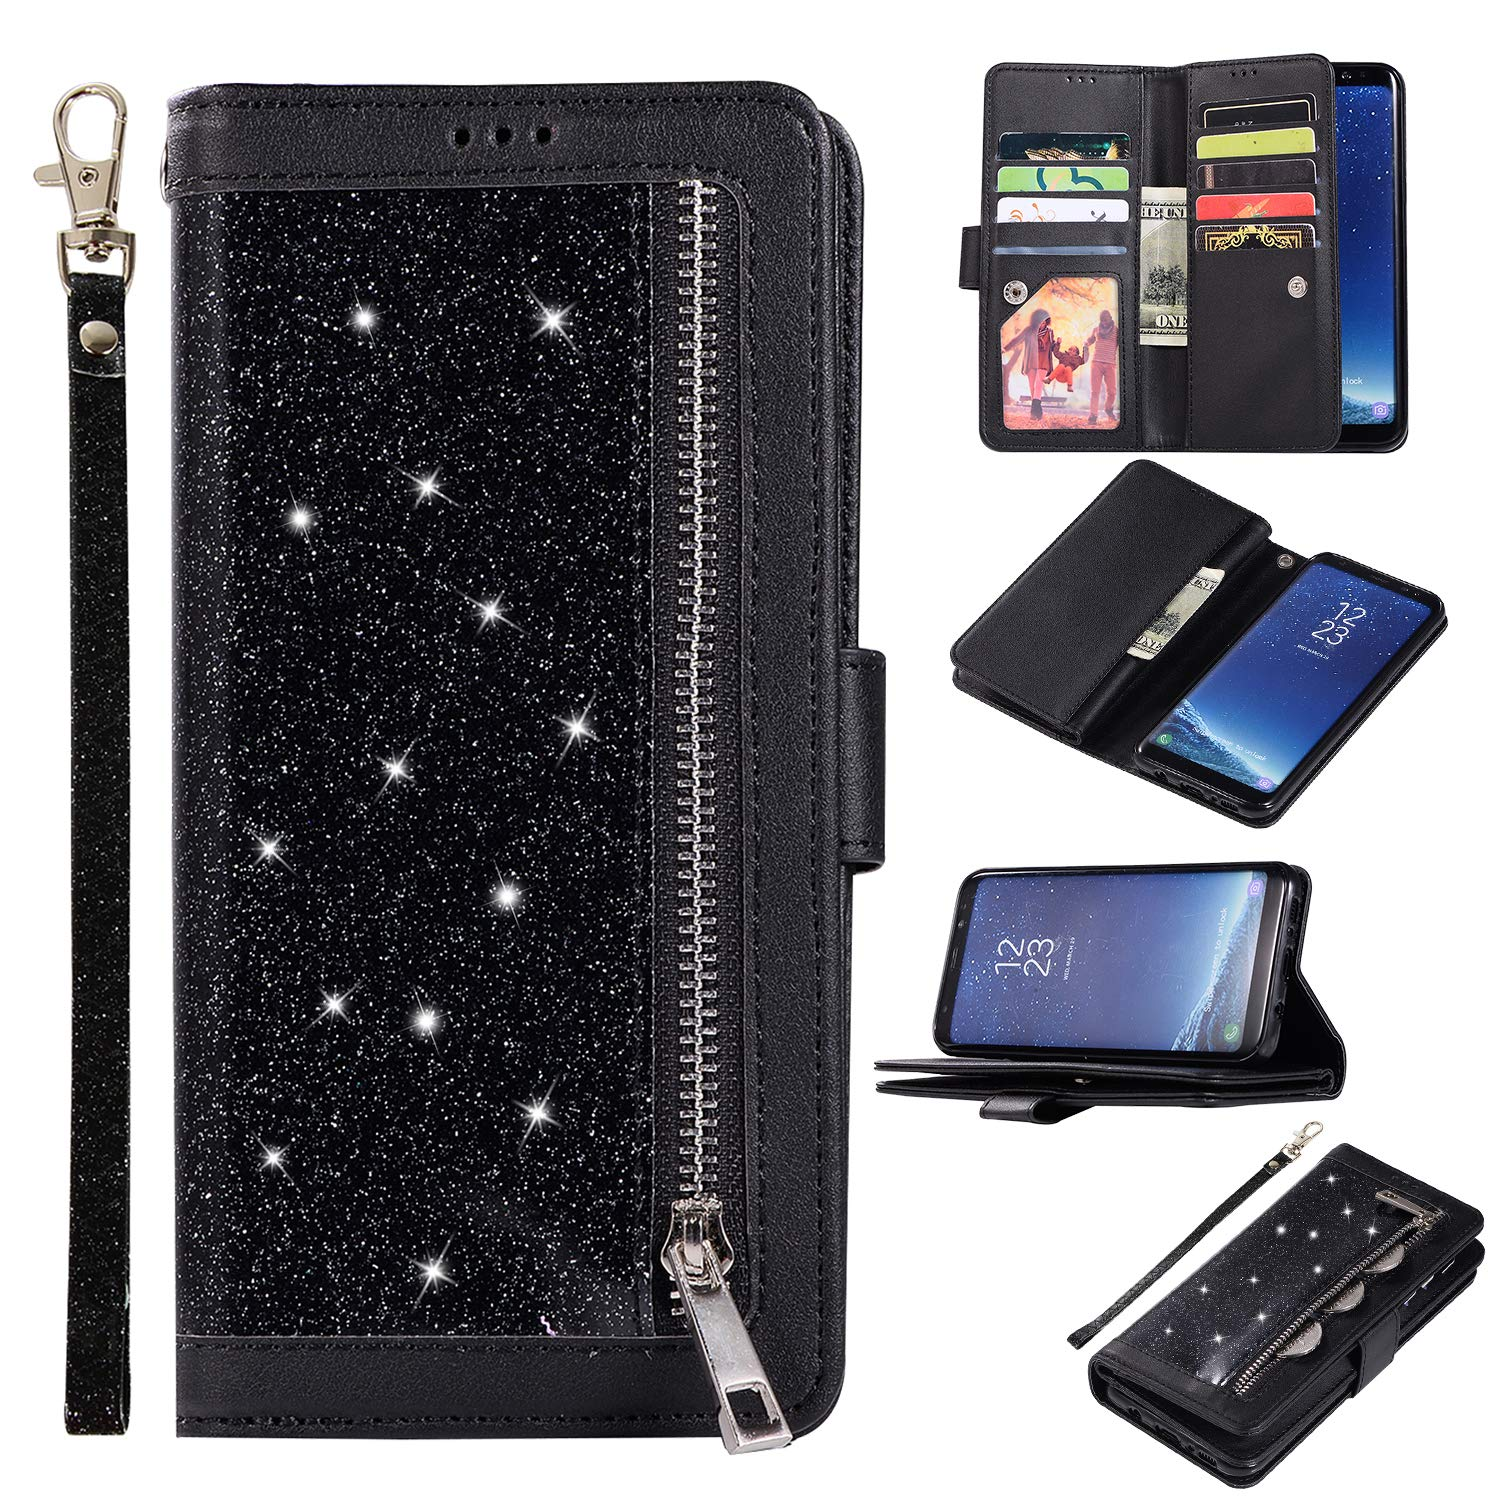 Shinyzone Glitter PU Case for Samsung Galaxy S8,Wallet Leather Flip Case with Zipper Pocket,Bling Cover with 9 Card Holder and Wrist Strap Magnetic Stand Function,Black by Shinyzone (Image #1)